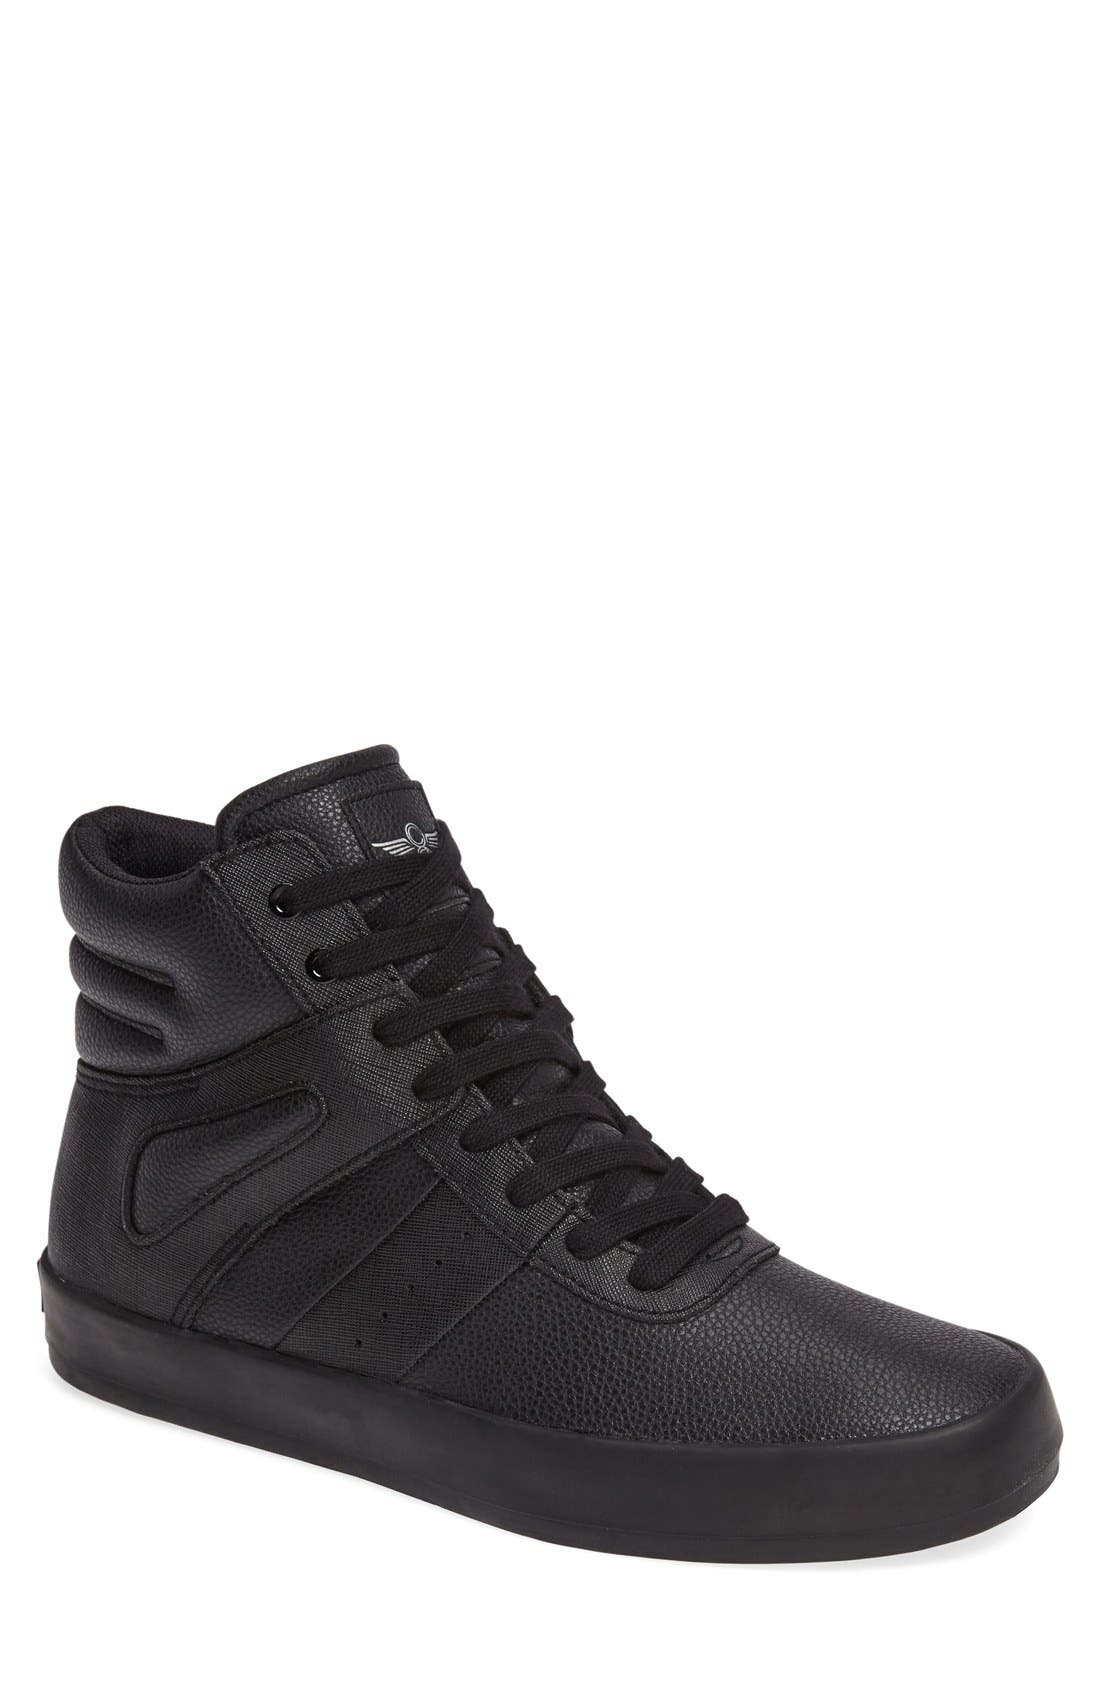 'Moretti' Sneaker,                         Main,                         color, 002